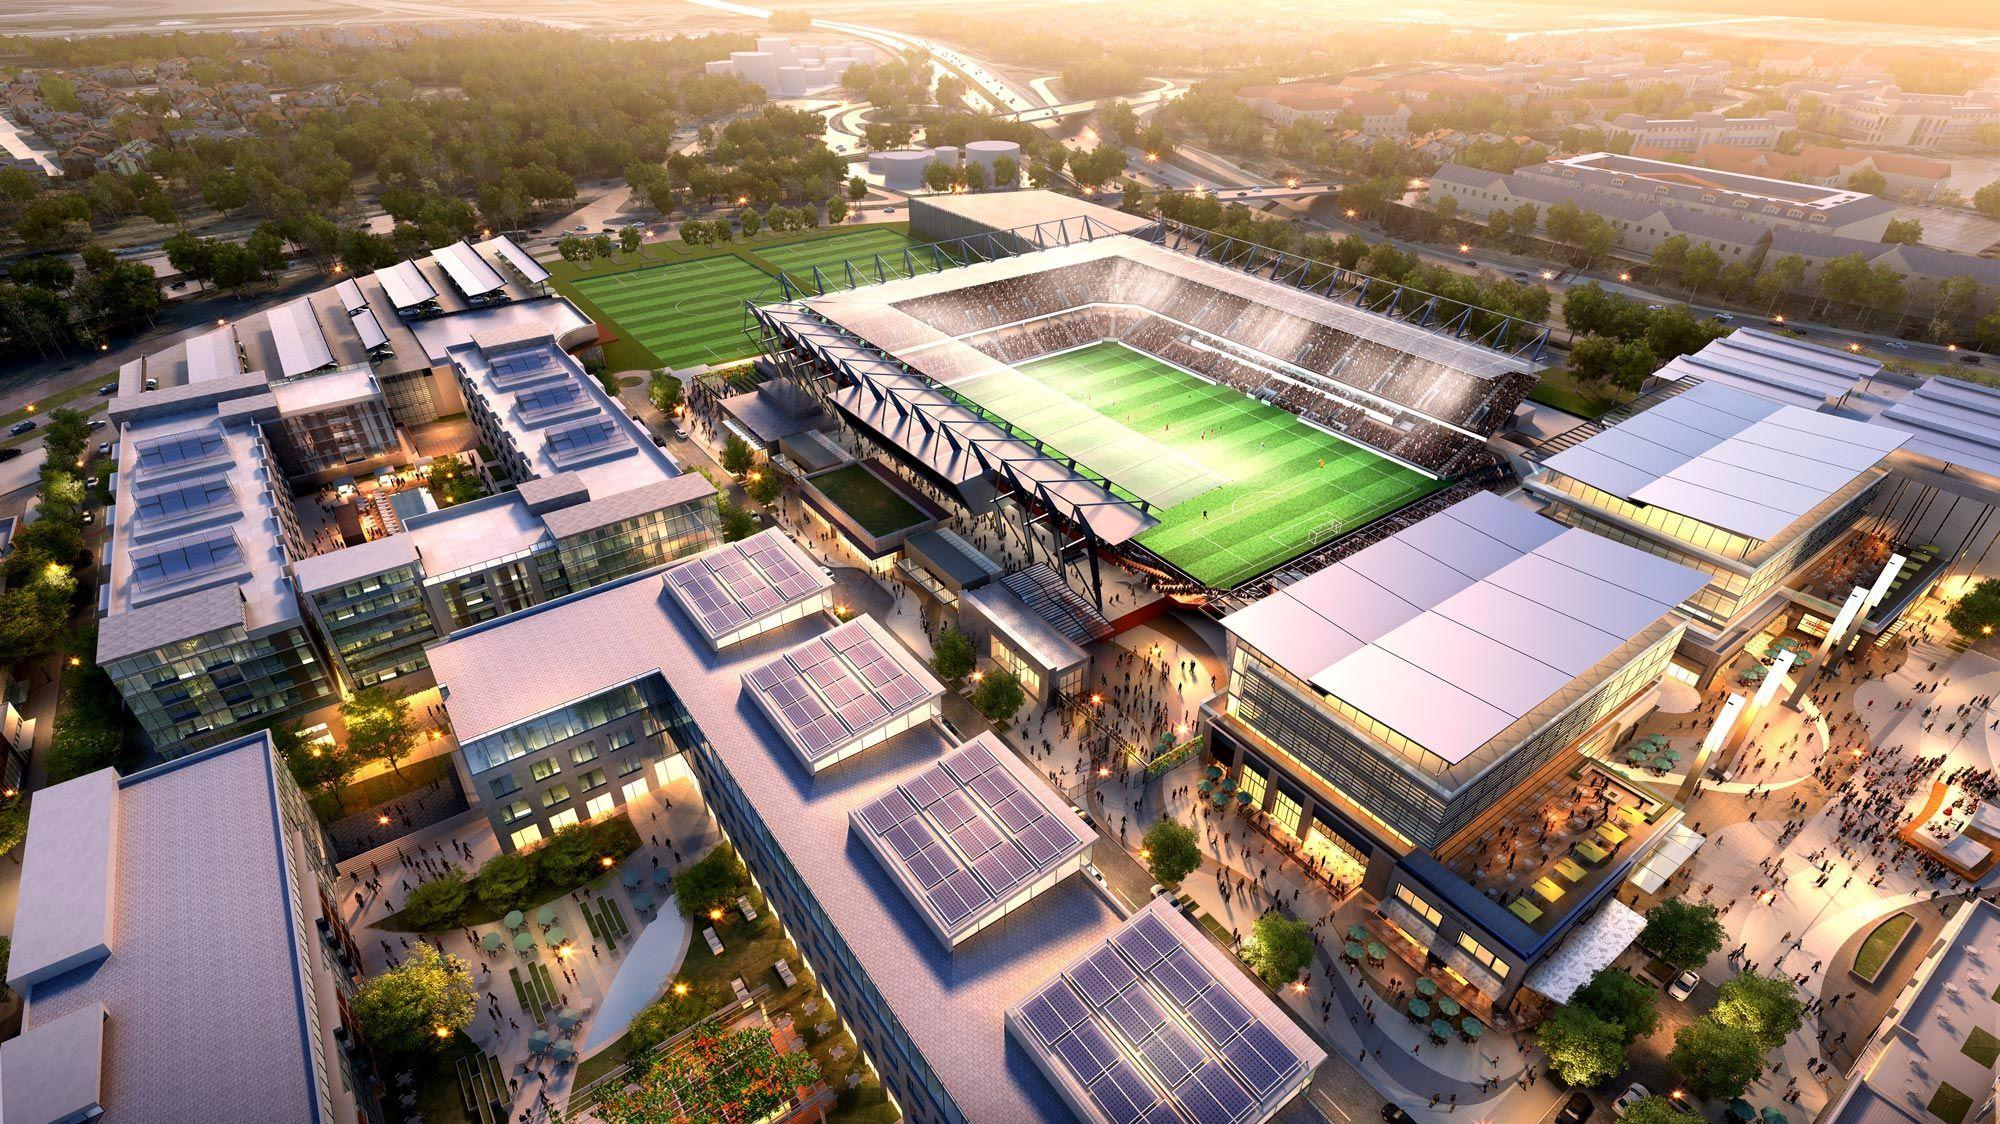 An architectural rendering of SoccerCity, a $1 billion redevelopment proposed for the Qualcomm Stadium site in San Diego's Mission Valley.